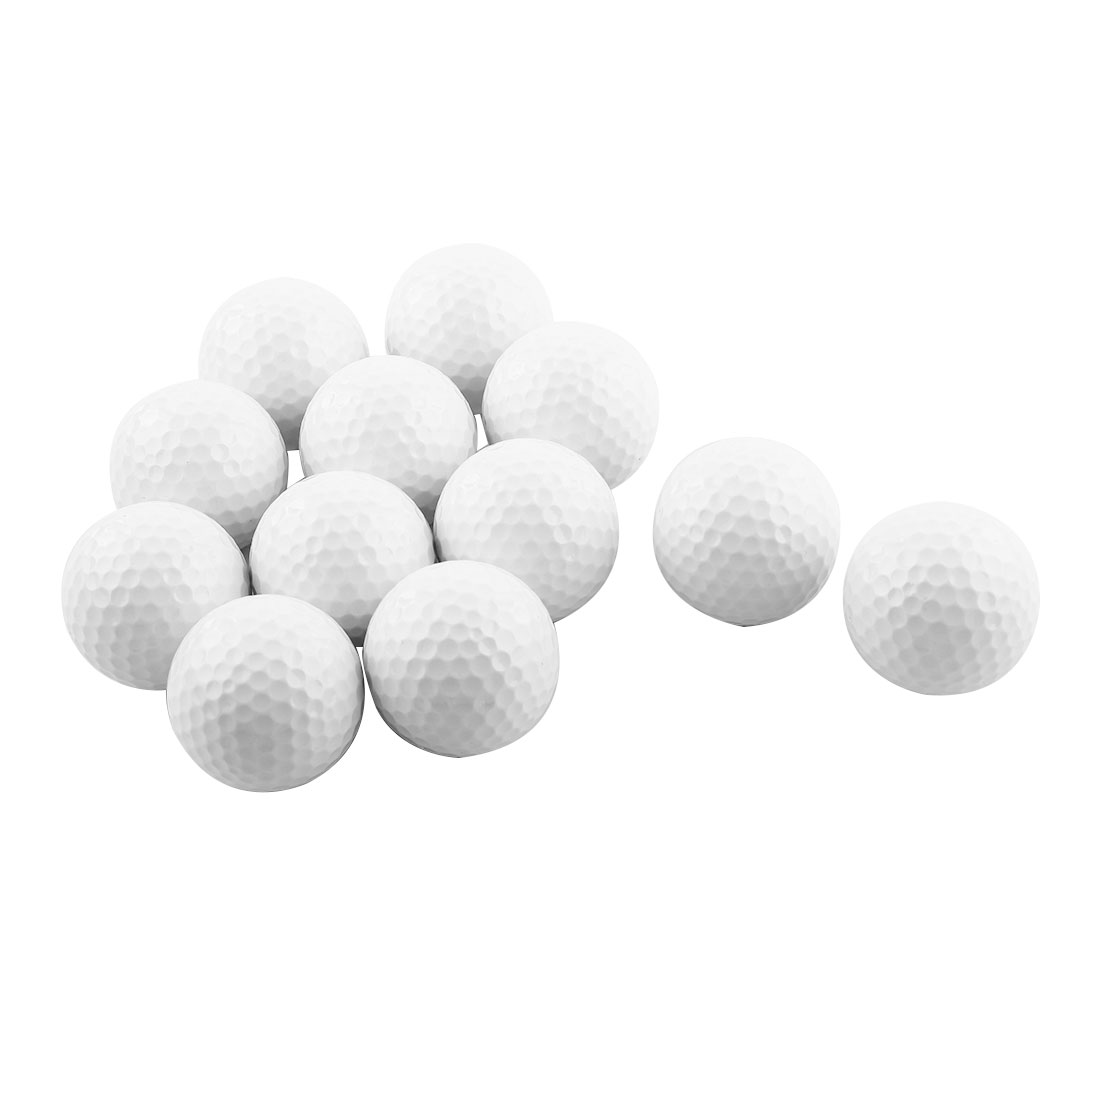 Outdoor Sports Resin Training Practice Golf Balls White 12 Pcs